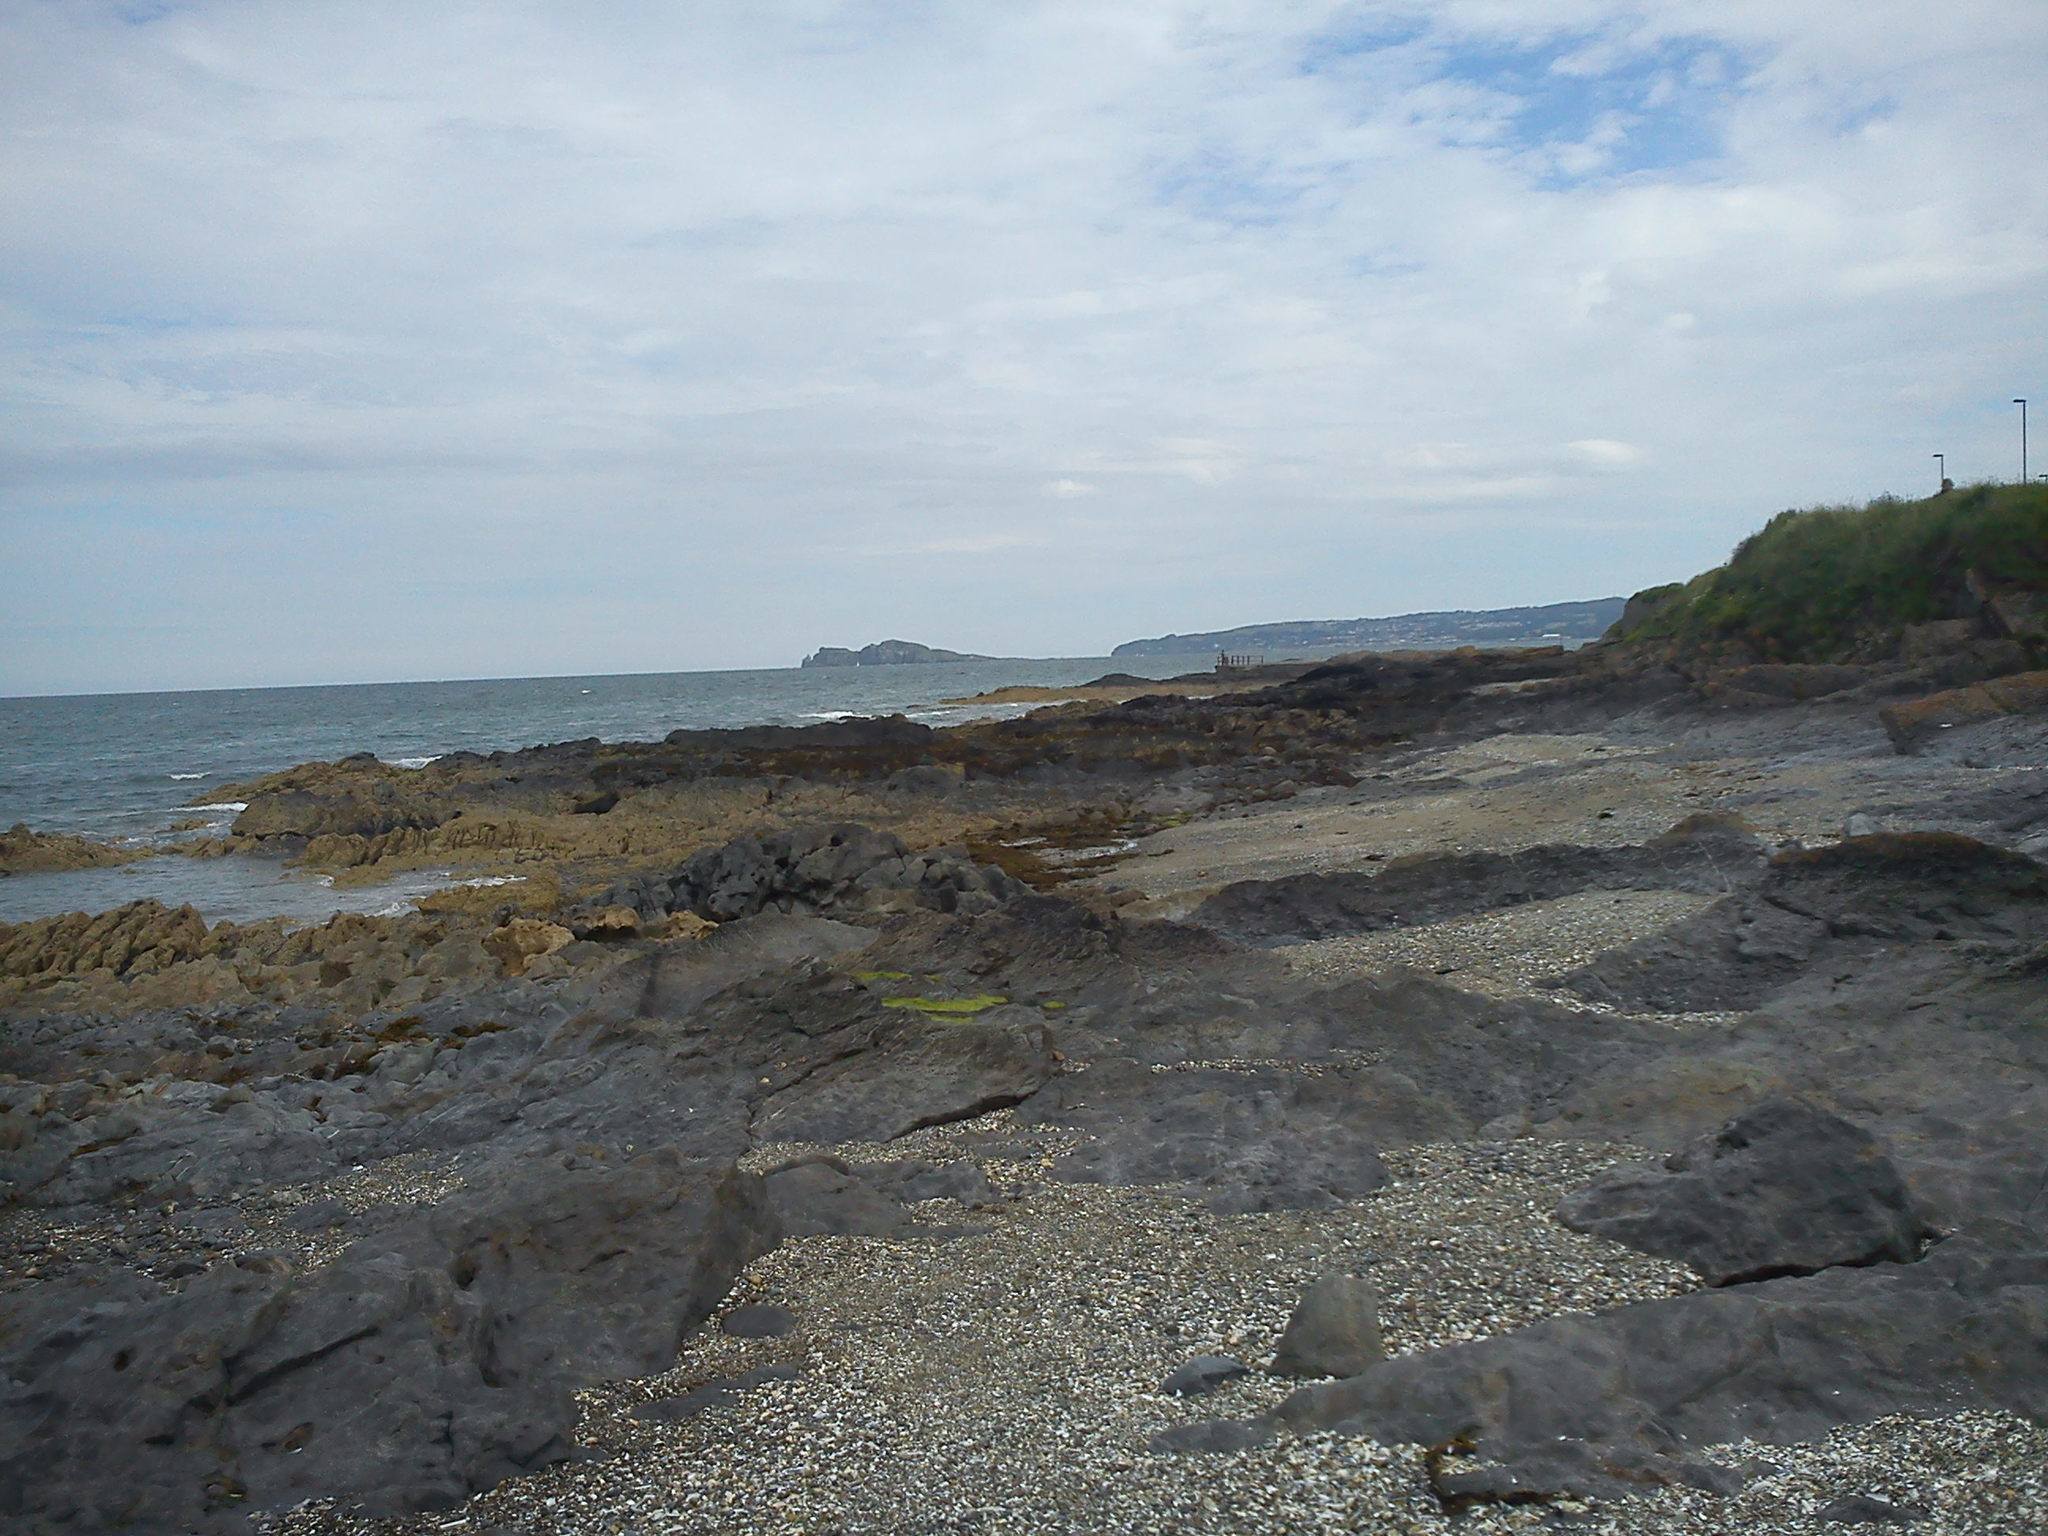 Archaeological Impact Report Portmarnock South Phase 1C